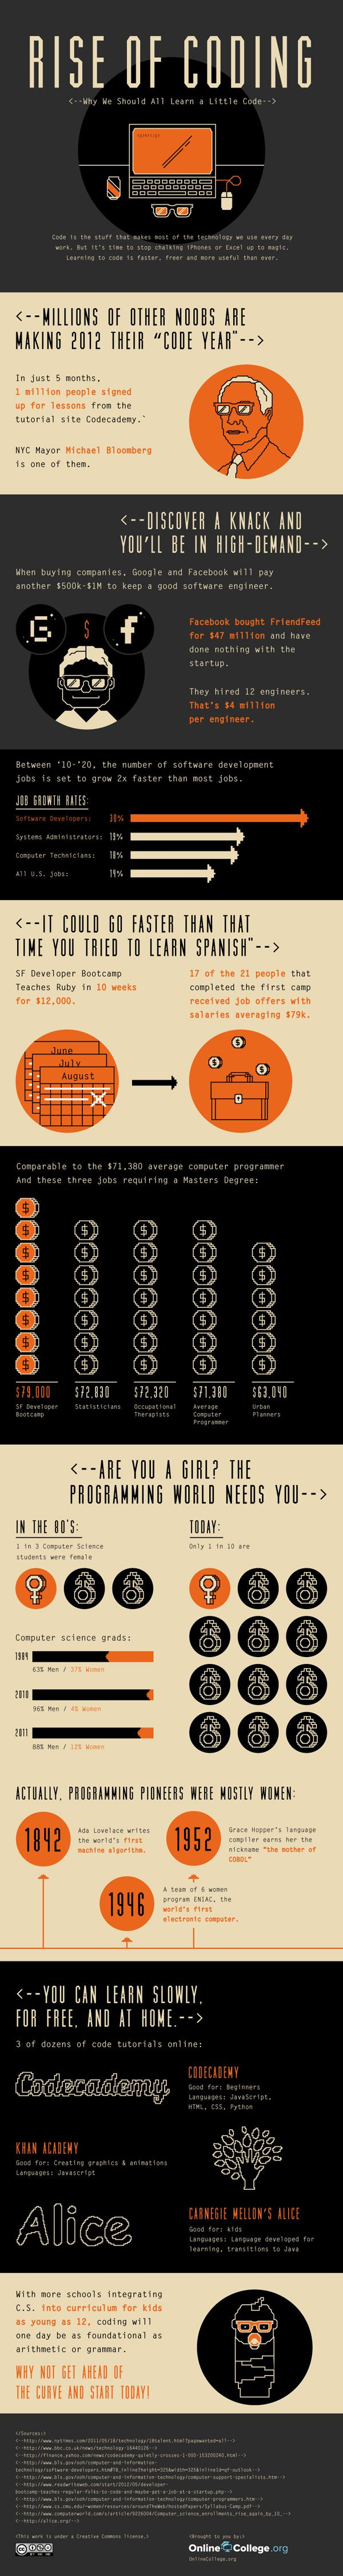 Humorous look at why you should become a coder too (infographic). Software development. Programming. Careers.